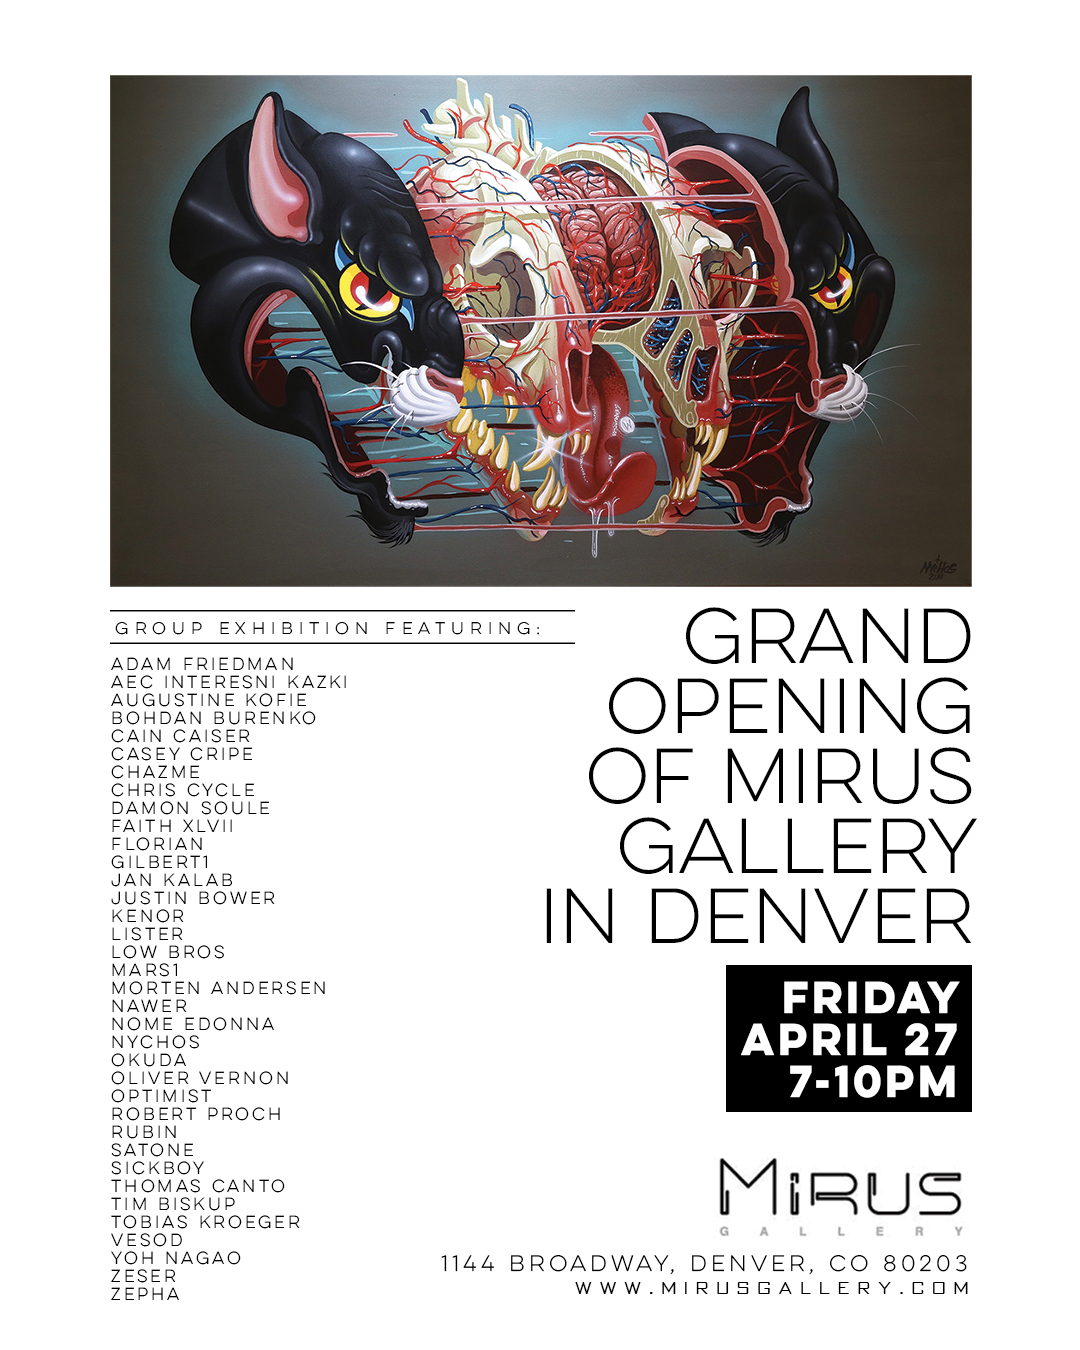 The grand opening of Mirus Gallery in Denver. I was vey pleased to be invited to participate in this exhibition!